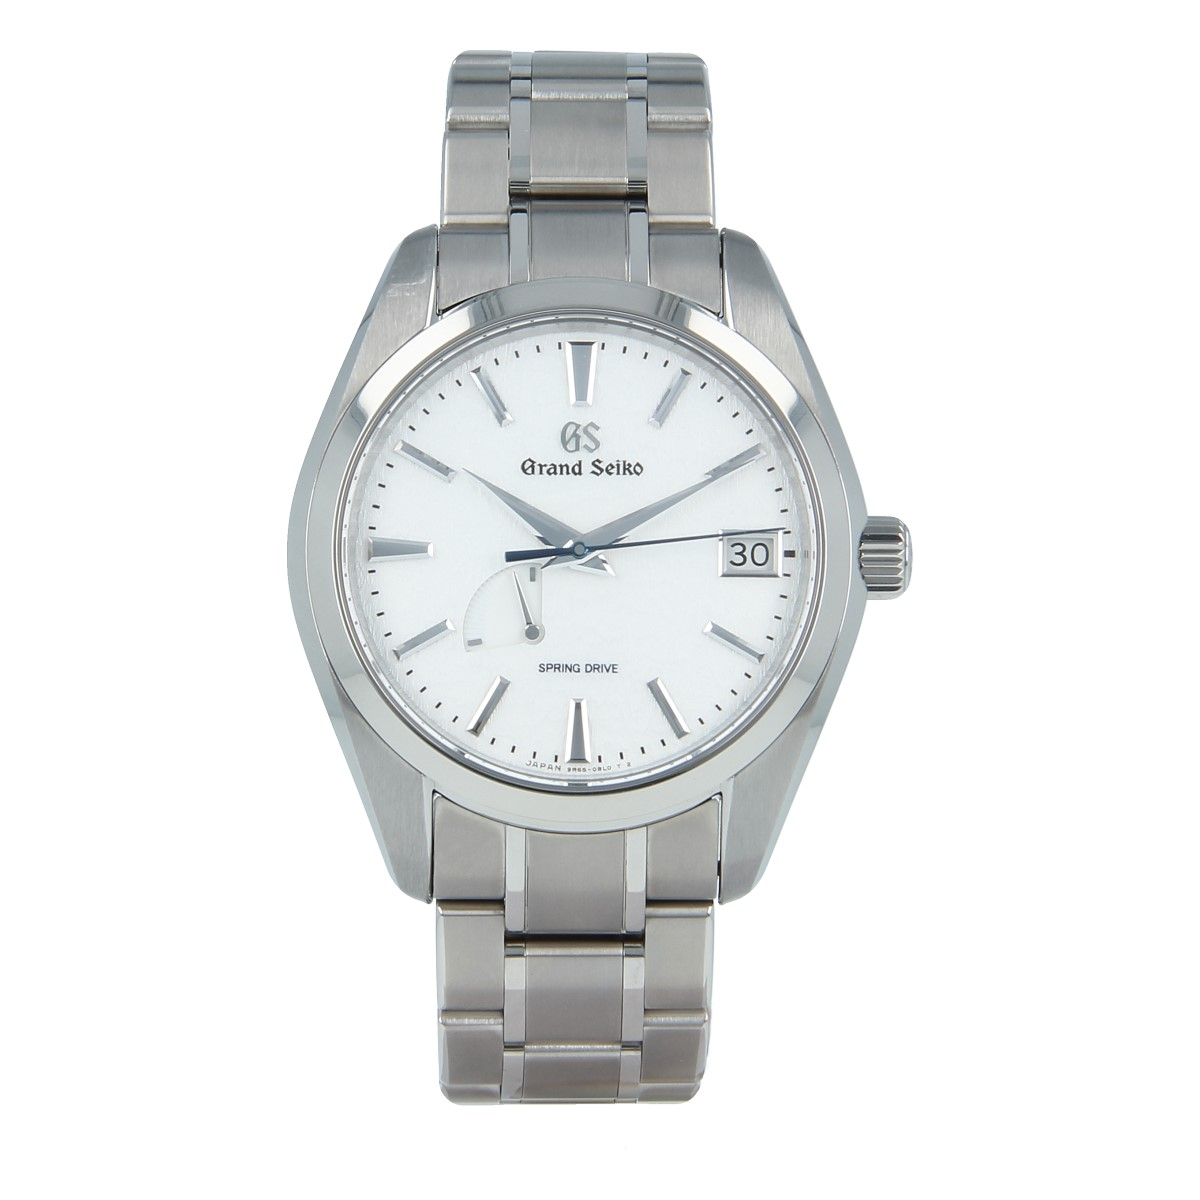 Seiko Grand Seiko Spring Drive Snowflake SBGA211.     *New* | Buy second hand Seiko watches